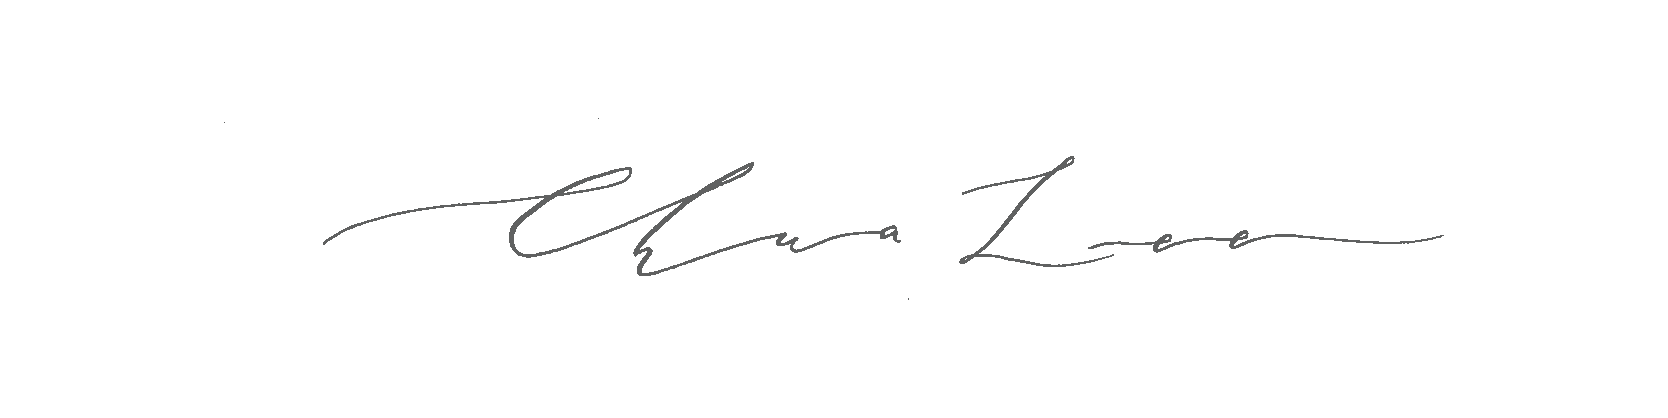 Chua Workspace_Signature.png